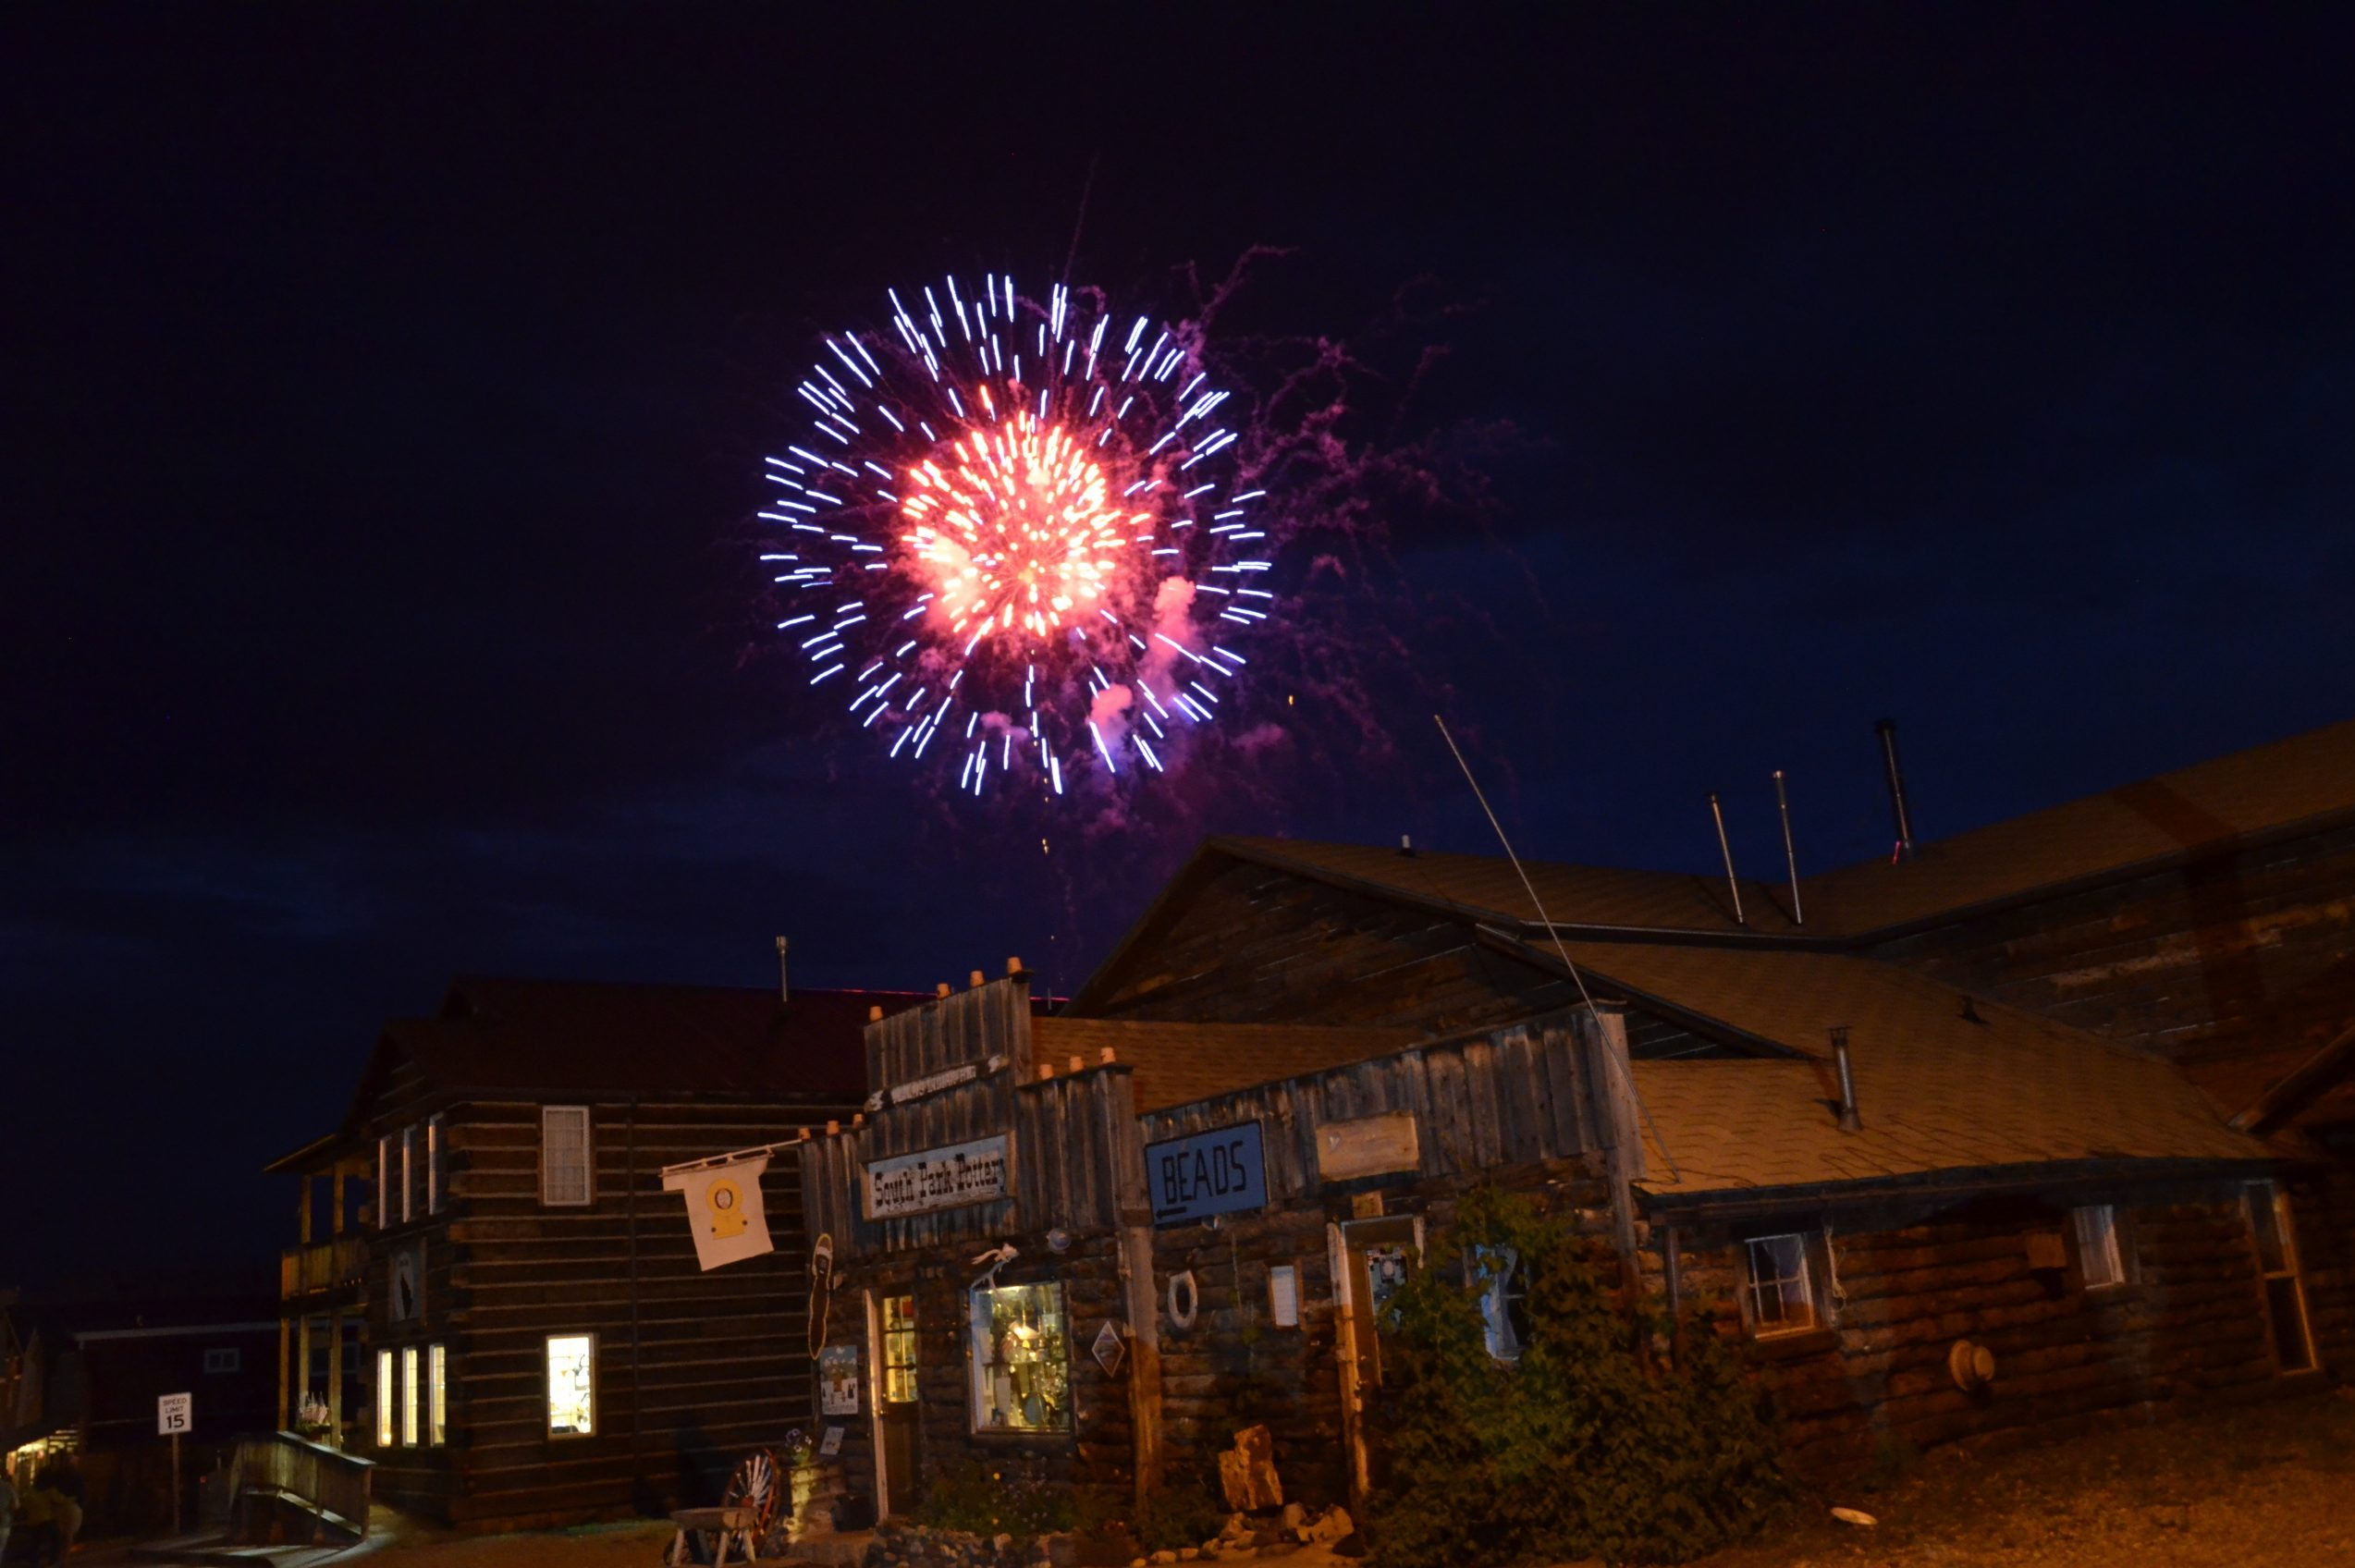 Fireworks explode over Fairplay. The small mountain town has decided to still hold its fireworks display this year, while many communities have decided against them due to high fire danger. A Fairplay official says she's hopeful recent rains will allow them to move forward as planned.